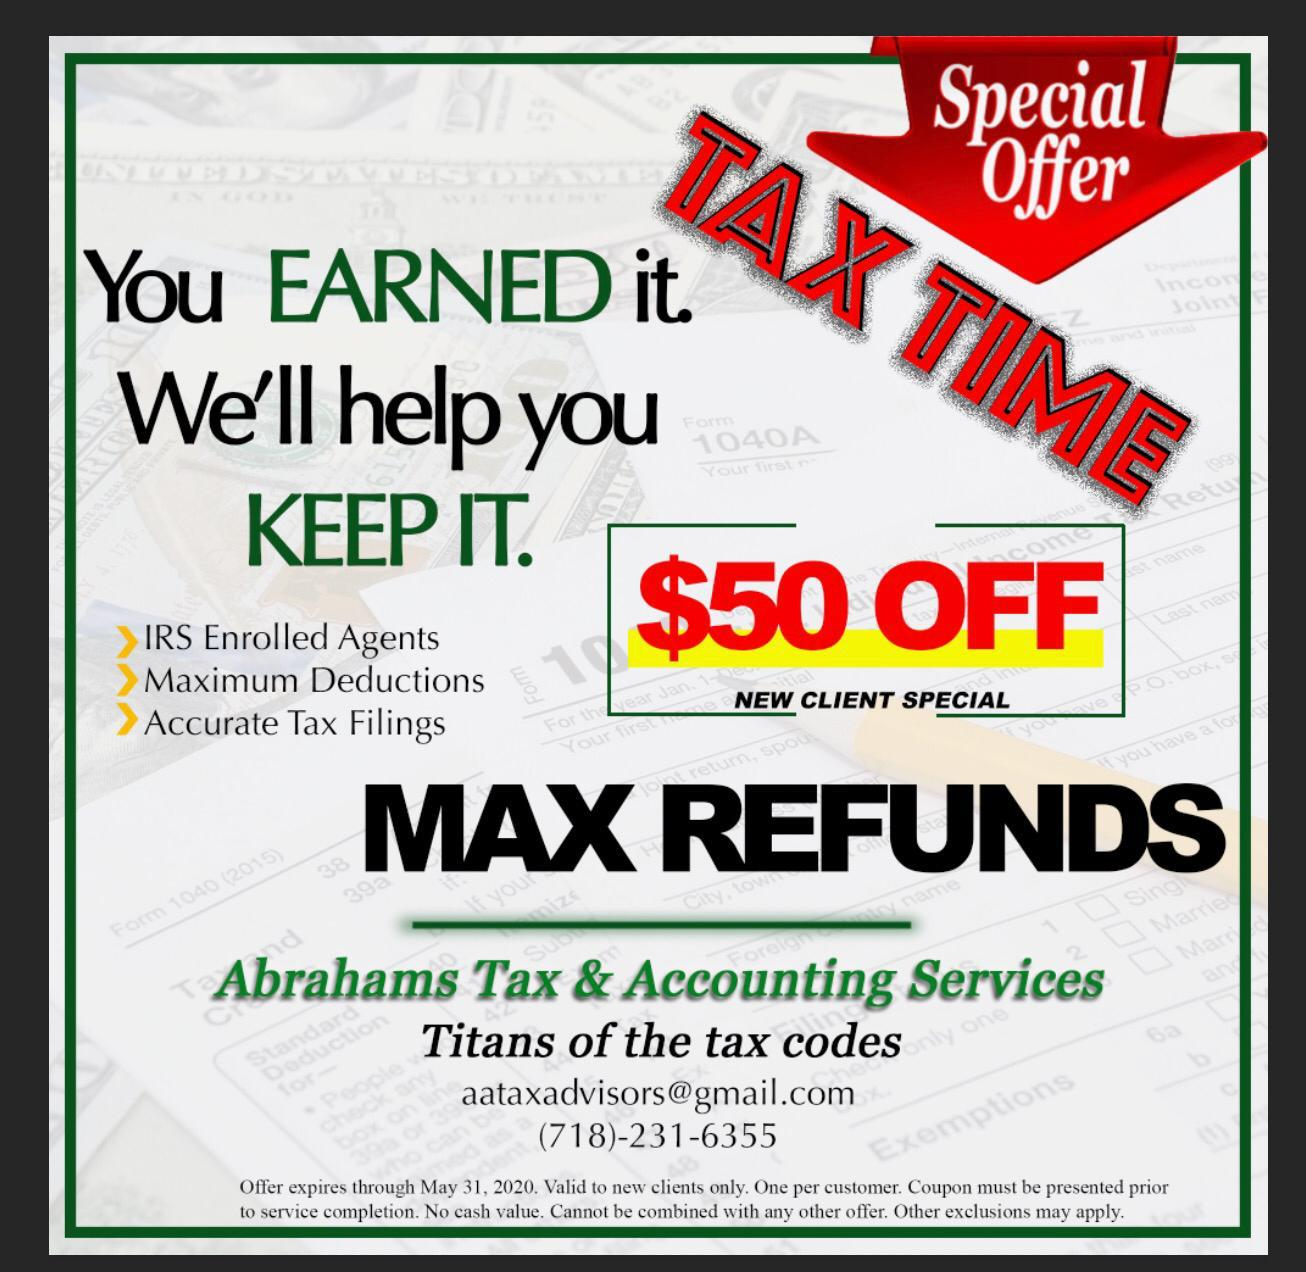 Tax Services in the Bronx, New York